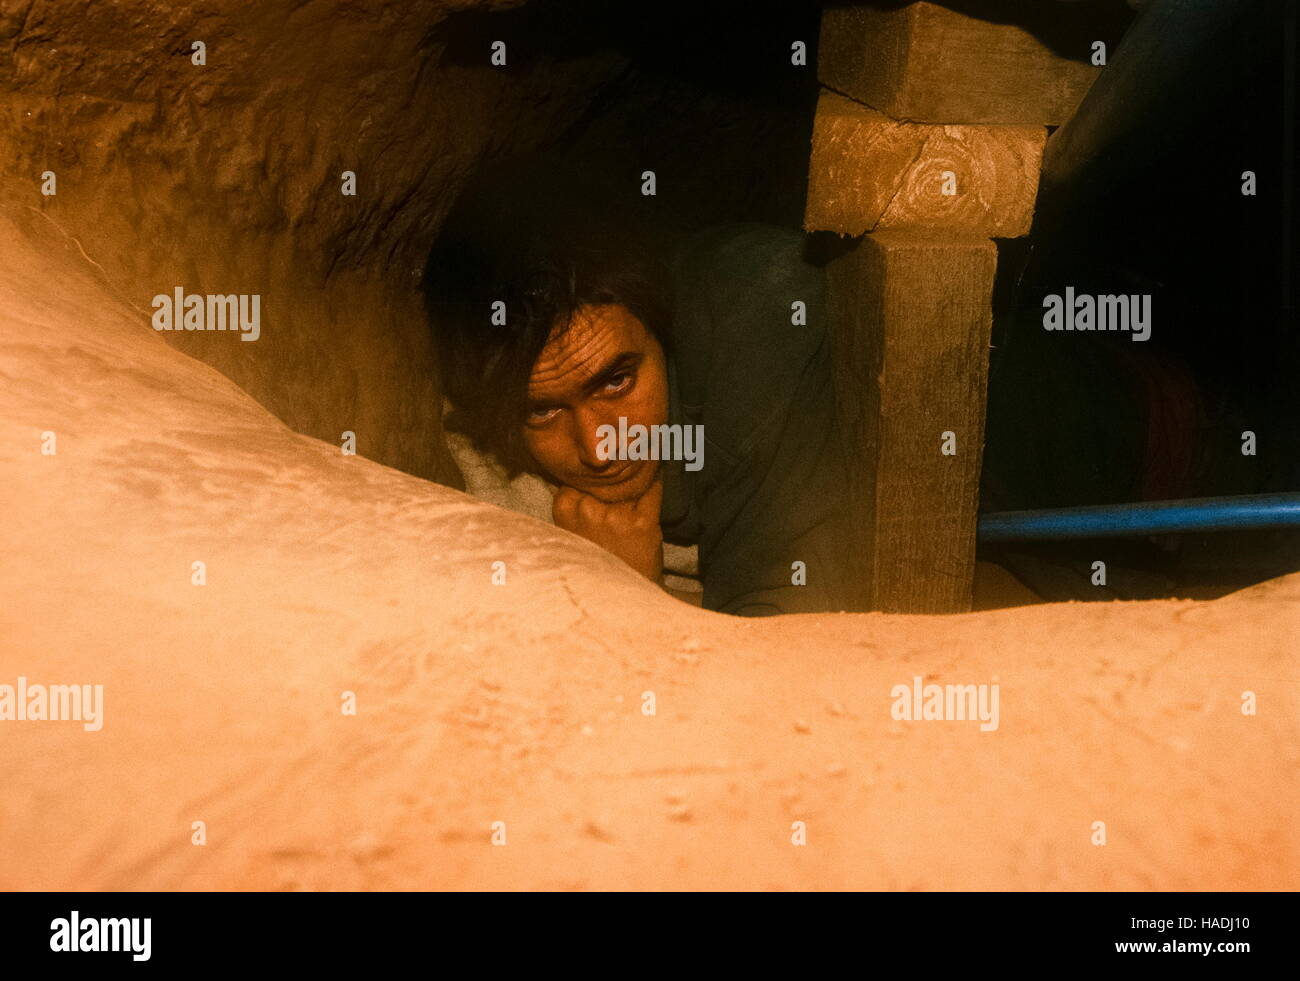 Swampy also known as  Daniel Cooper in a protest tunnel he built at the Manchester Airport Runway protest. - Stock Image